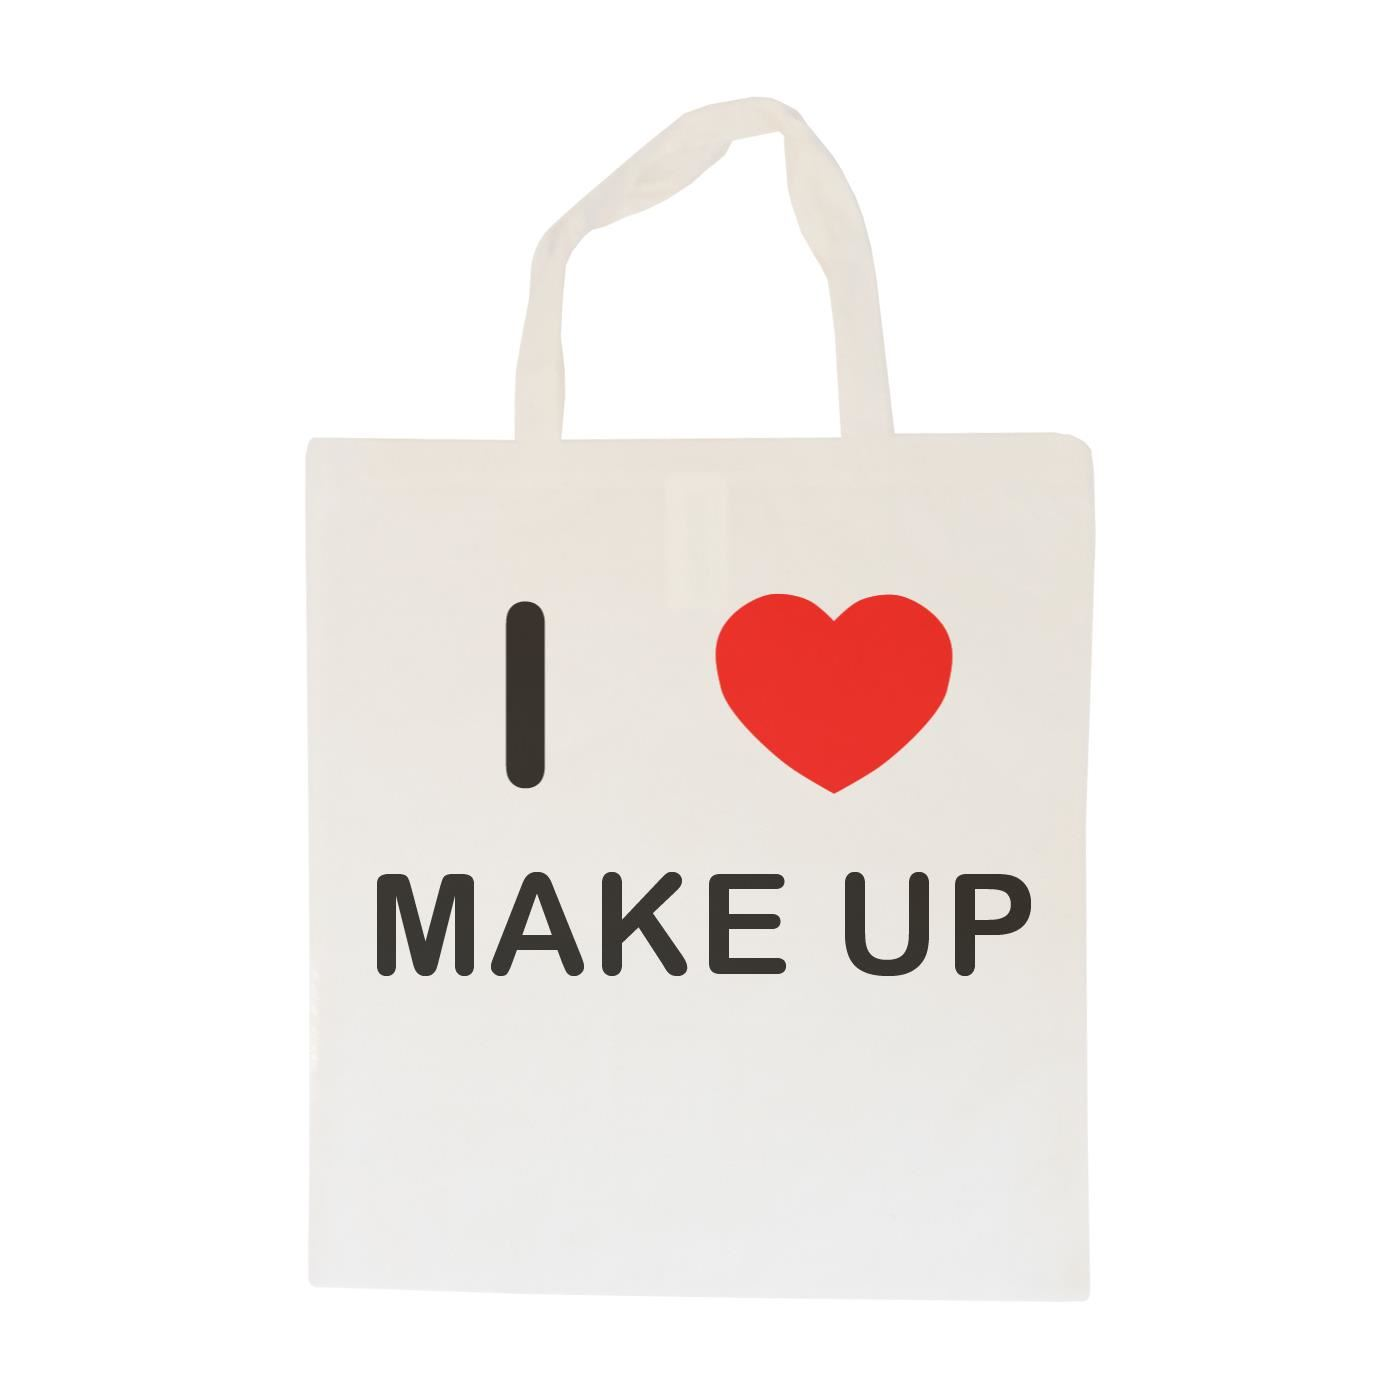 I Love Make Up - Cotton Bag | Size choice Tote, Shopper or Sling